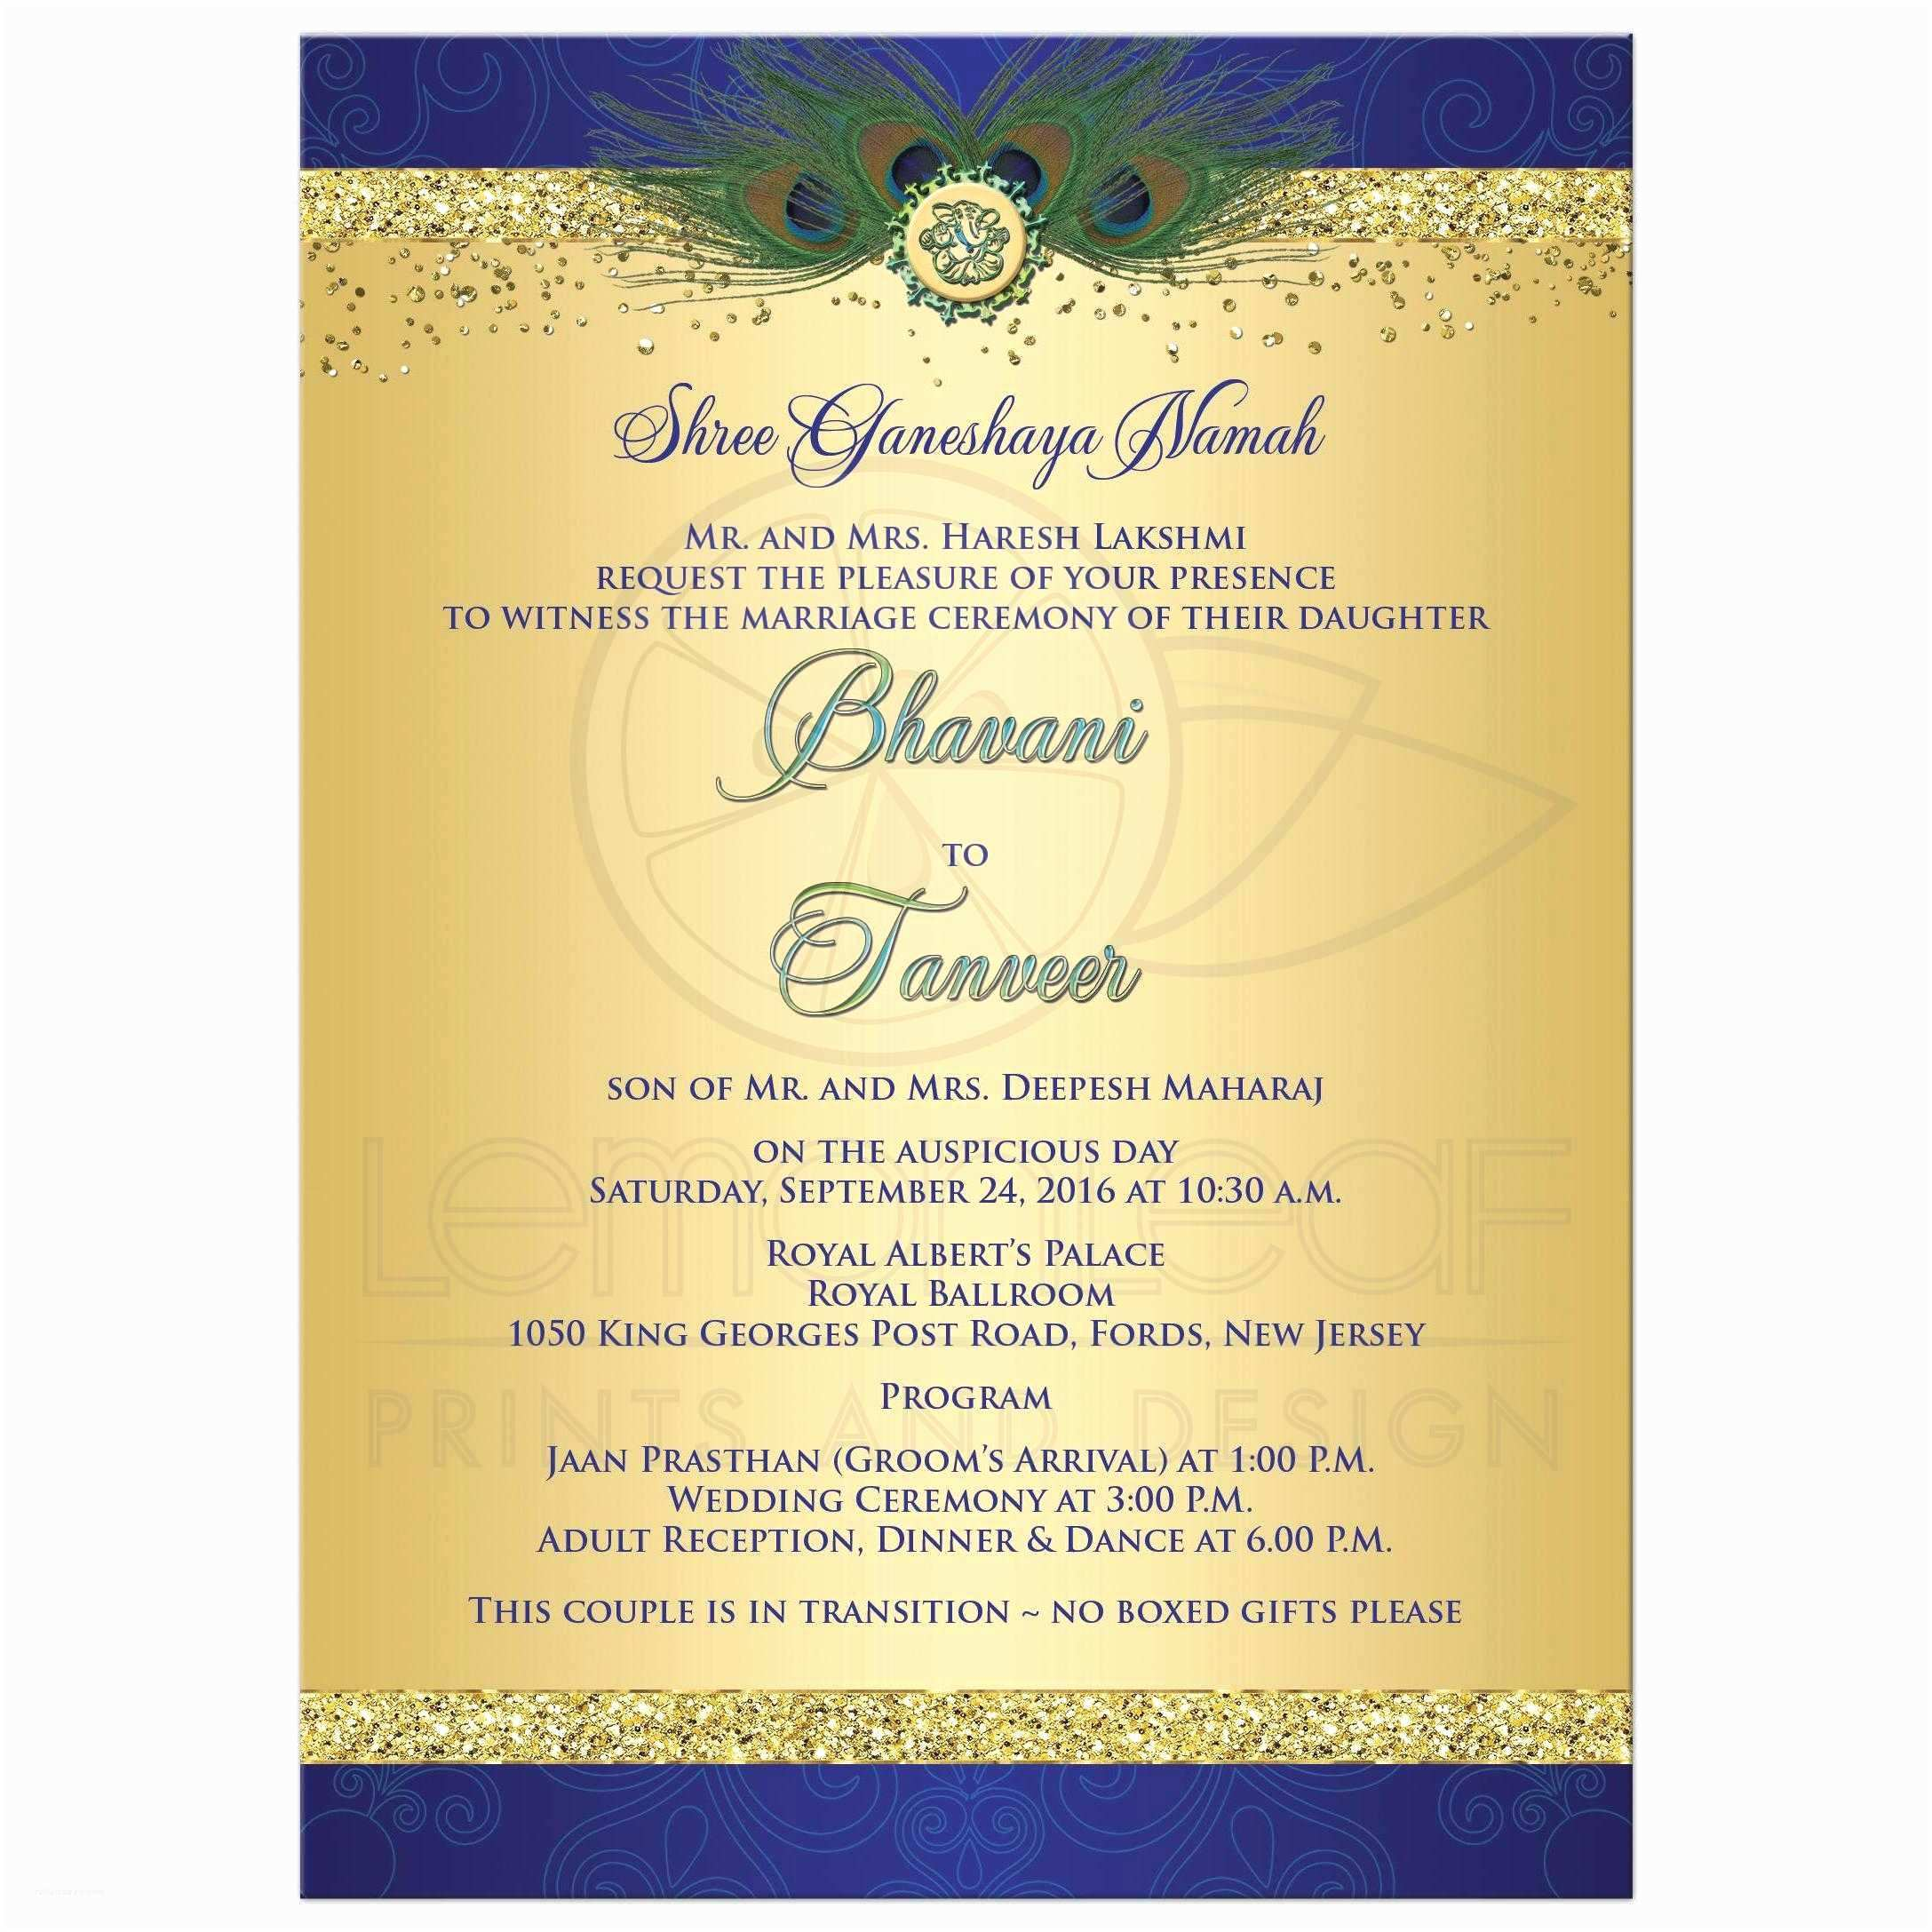 Samples Of Wedding Invitations Indian Wedding Invitation Cards Indian Wedding